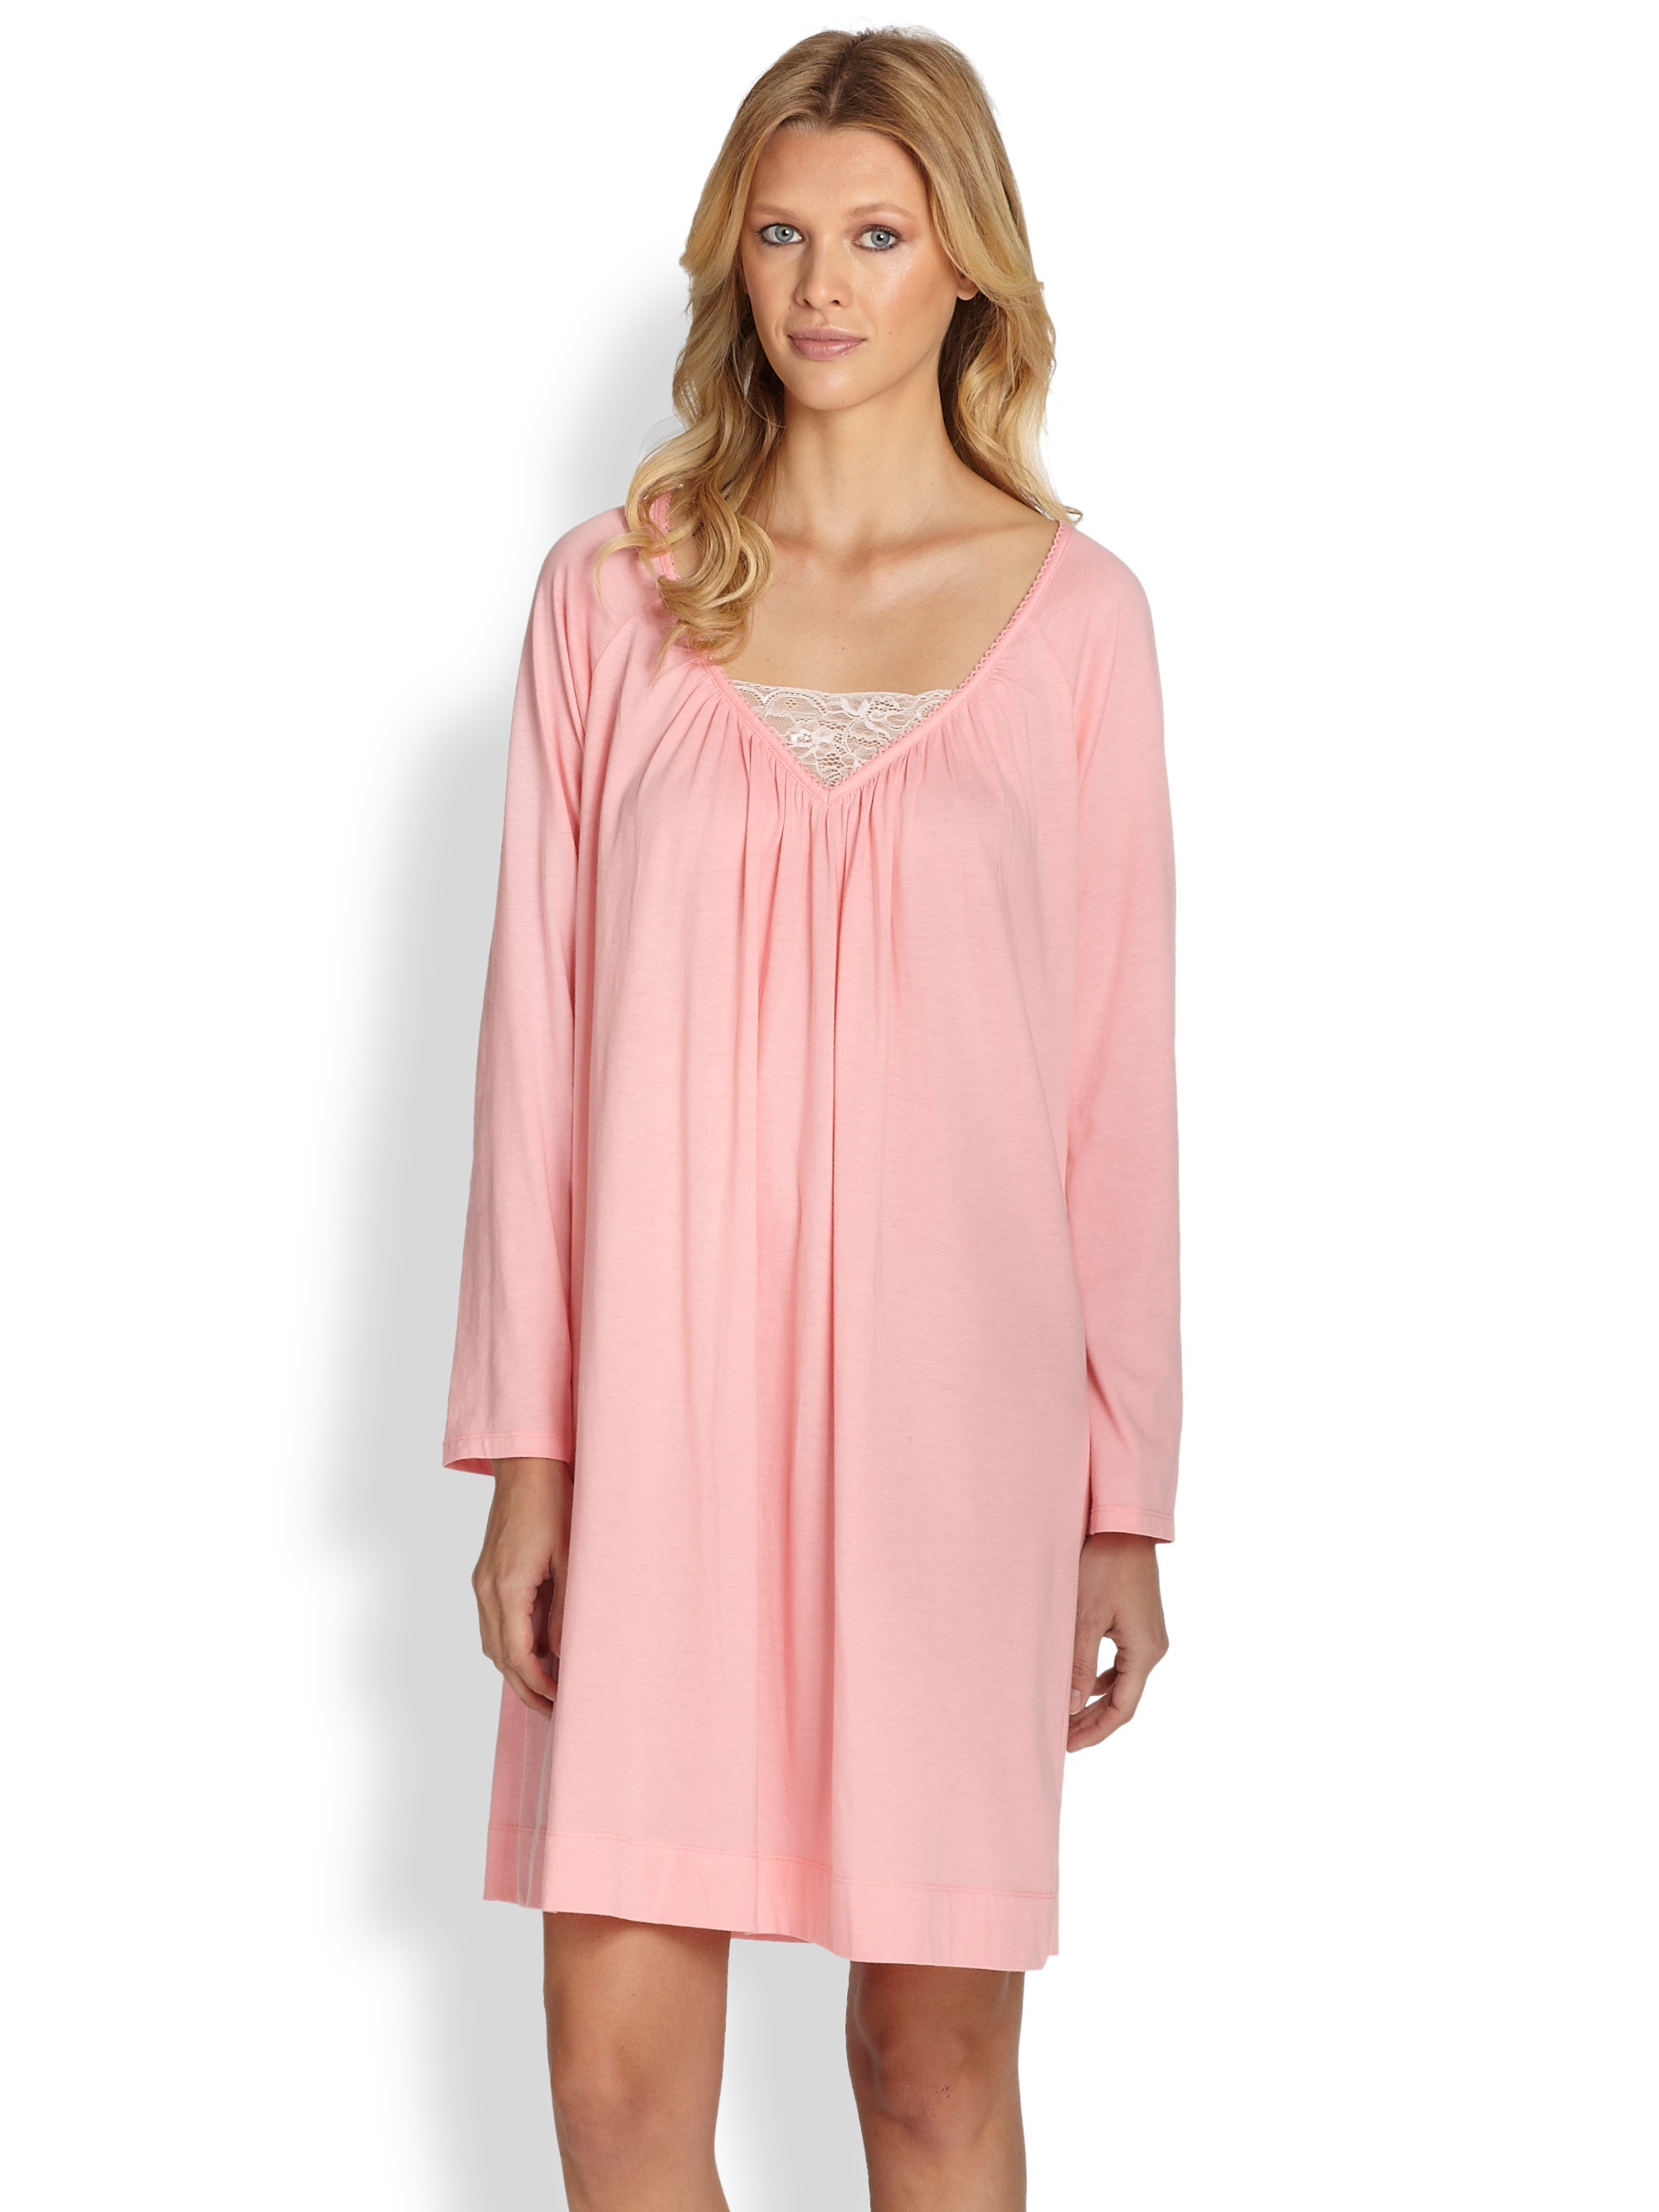 a5b2b1ba8e Cottonista  cheap for discount 396a9 450b8 Cottonista Pima Cotton Knit Gown  in Pink - Lyst ...